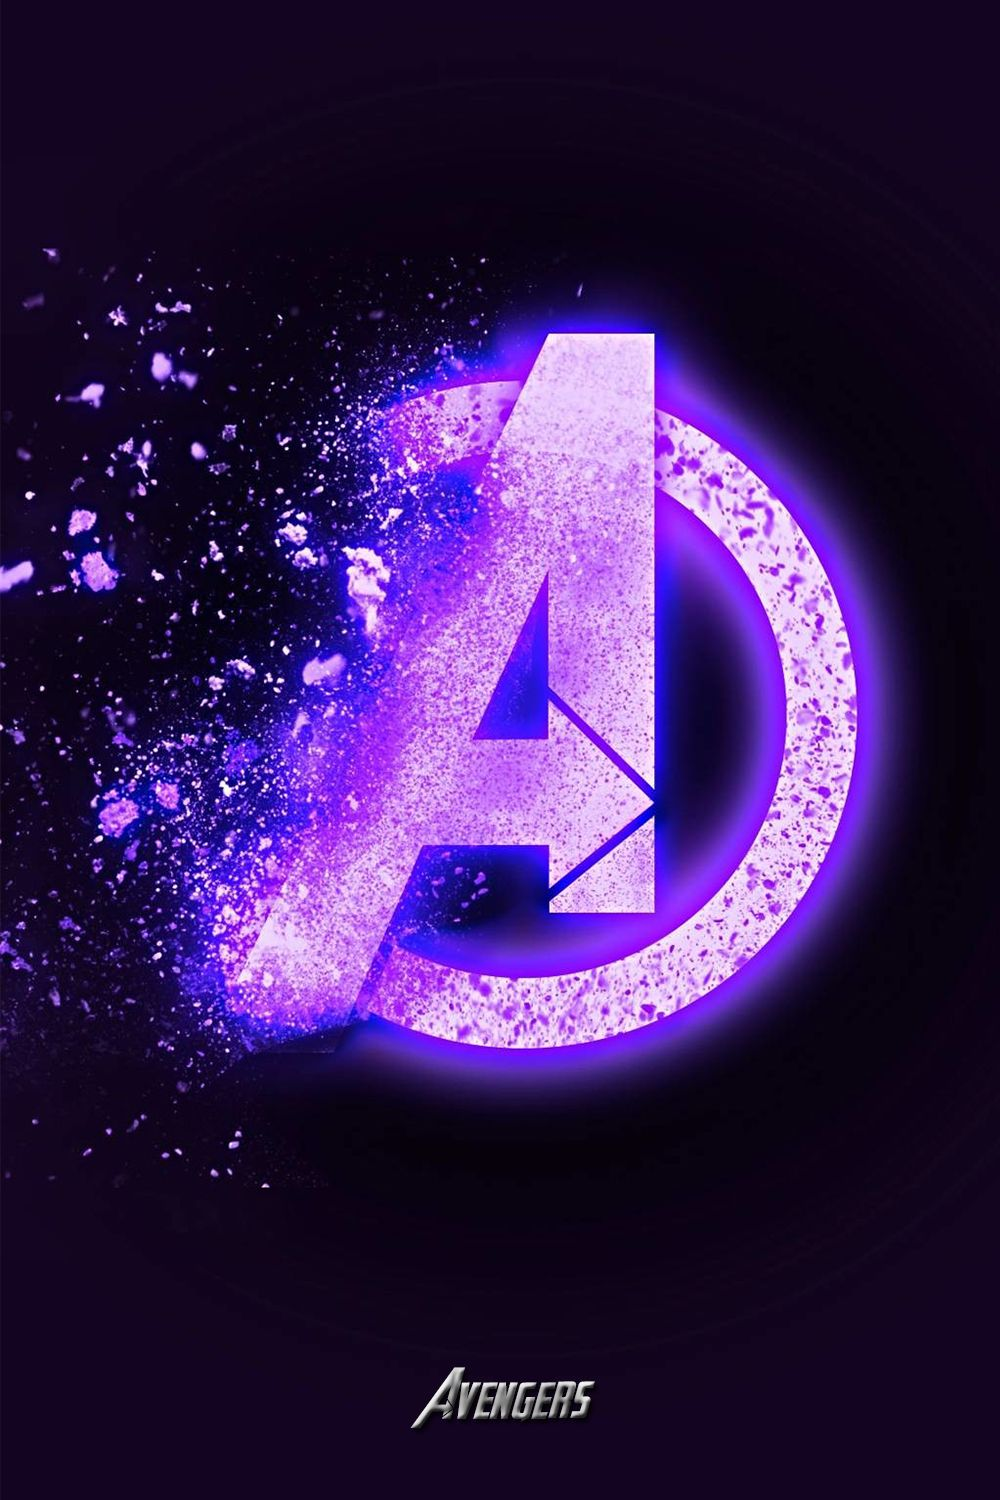 Best Avengers Wallpaper Hd Free Download In 2020 Avengers